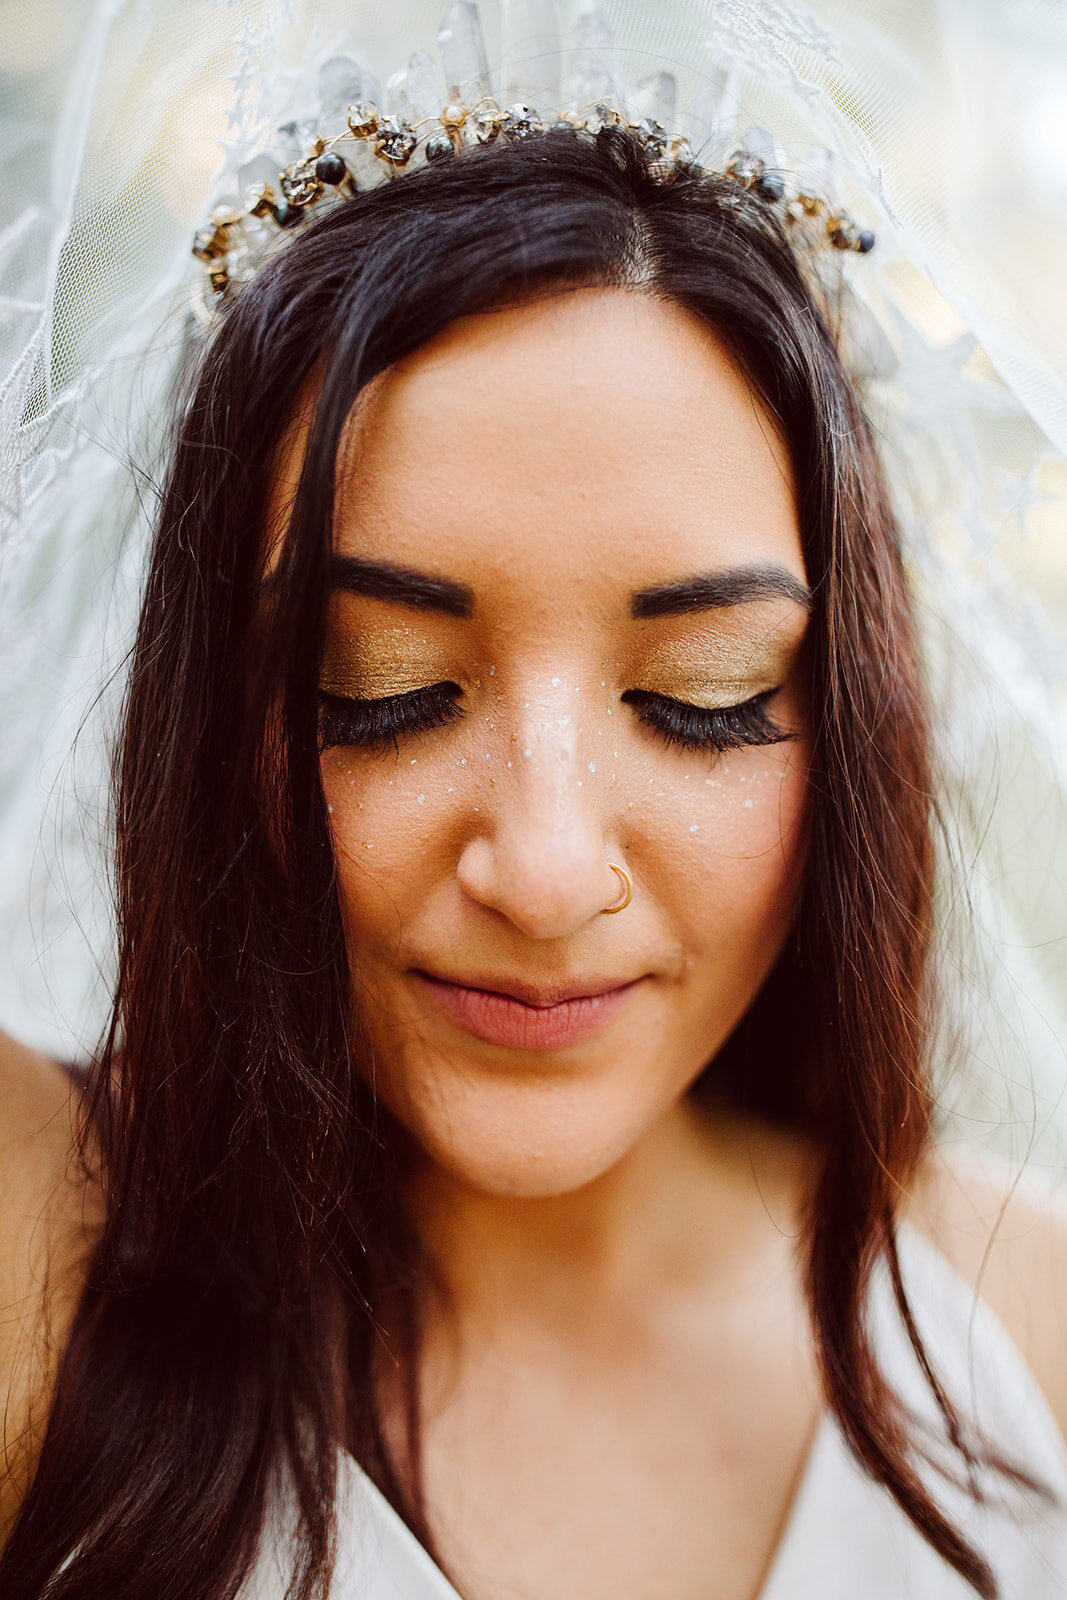 starry gold makeup for wedding with bridal crown